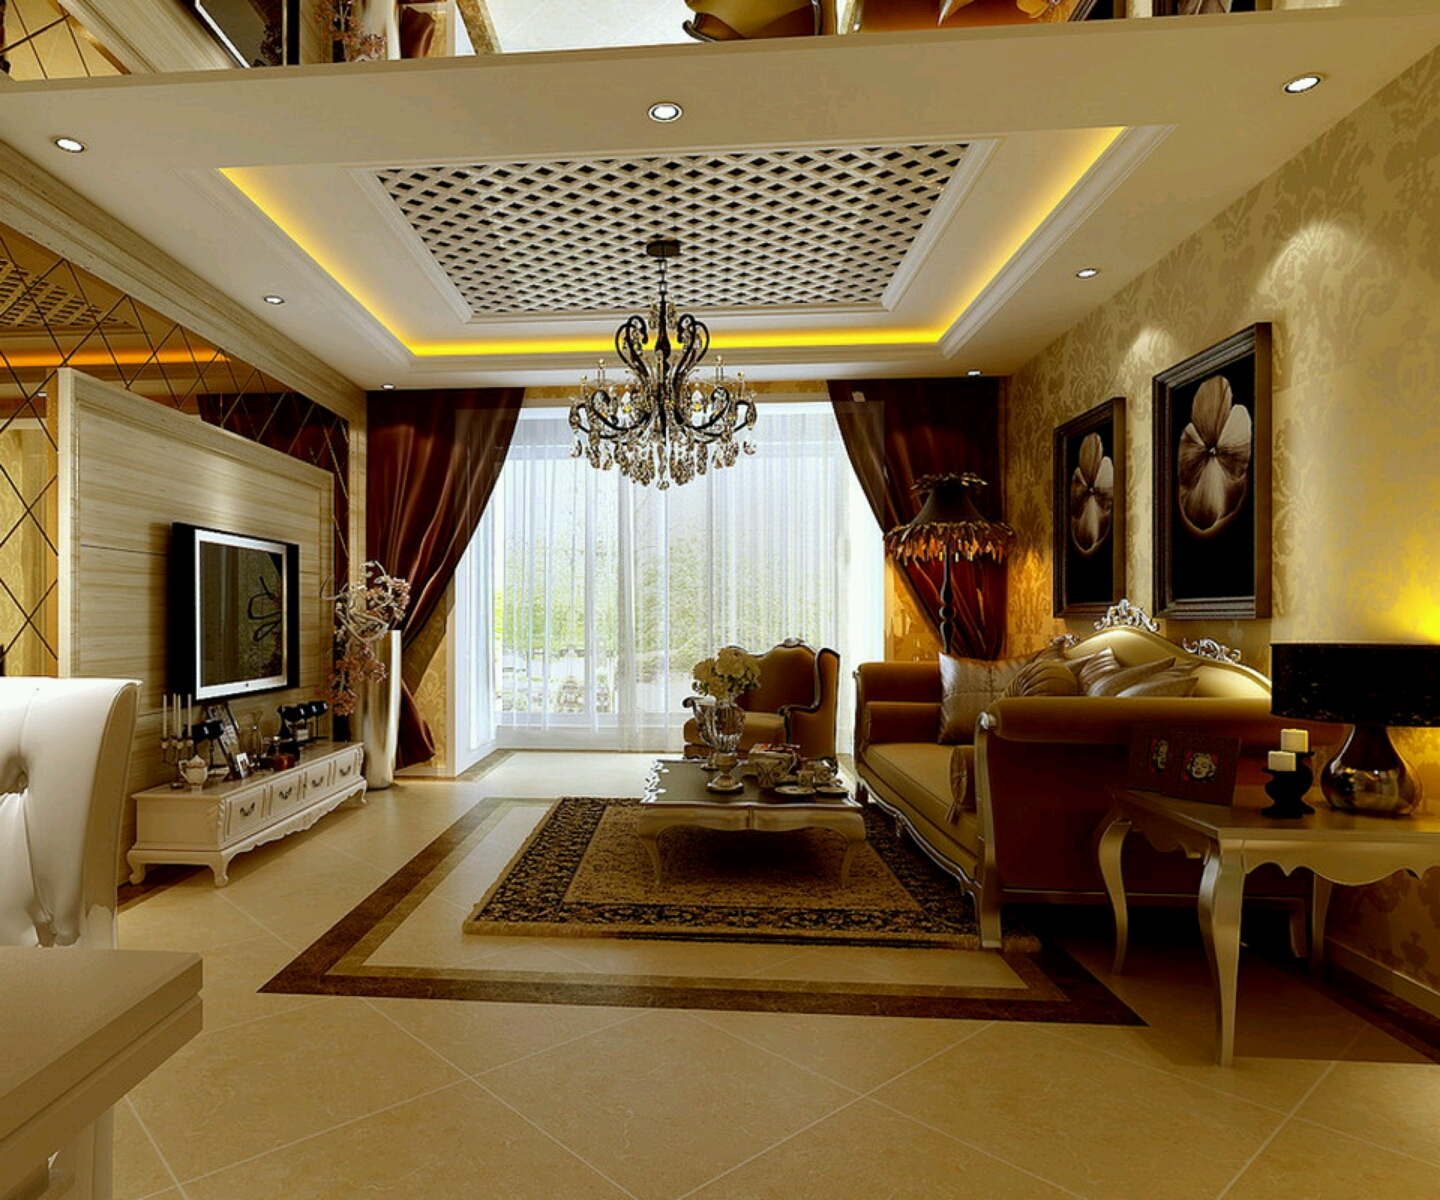 New home designs latest luxury homes interior decoration for Interior decorating ideas for your home